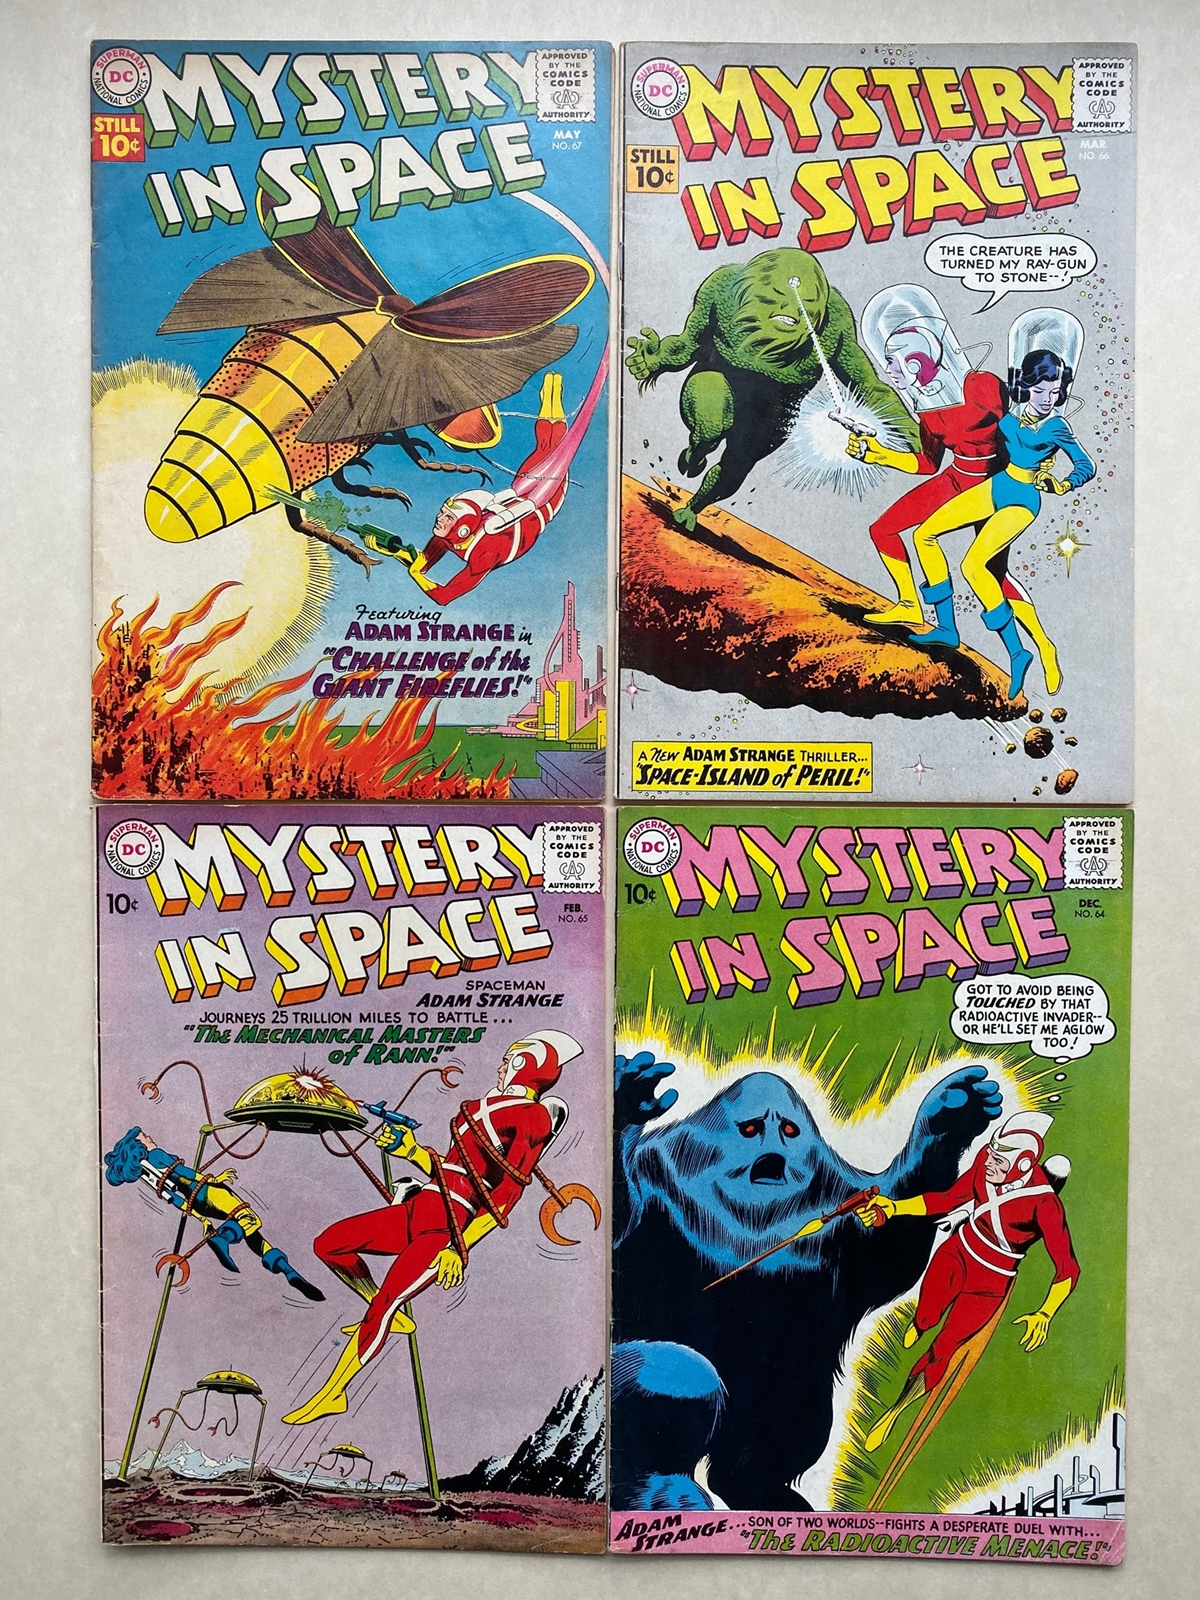 Lot 2079 - MYSTERY IN SPACE #64, 65, 66, 67 (4 in Lot) - (1960/61 - DC - Cents Copy - FN/VFN) - First